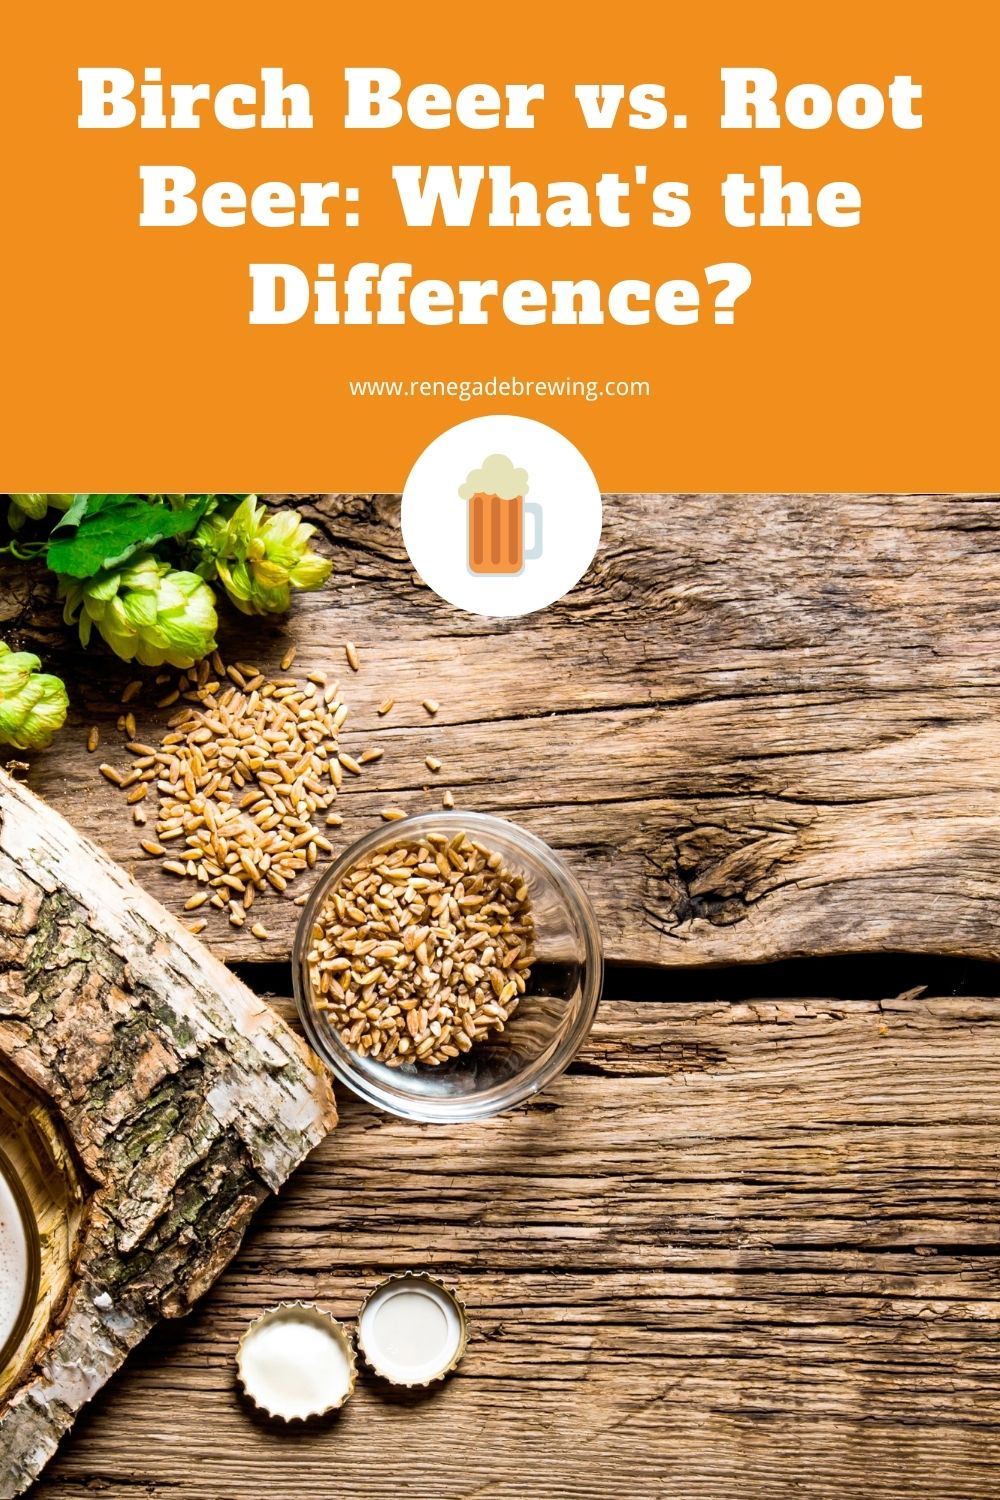 Birch Beer vs. Root Beer What's the Difference 2